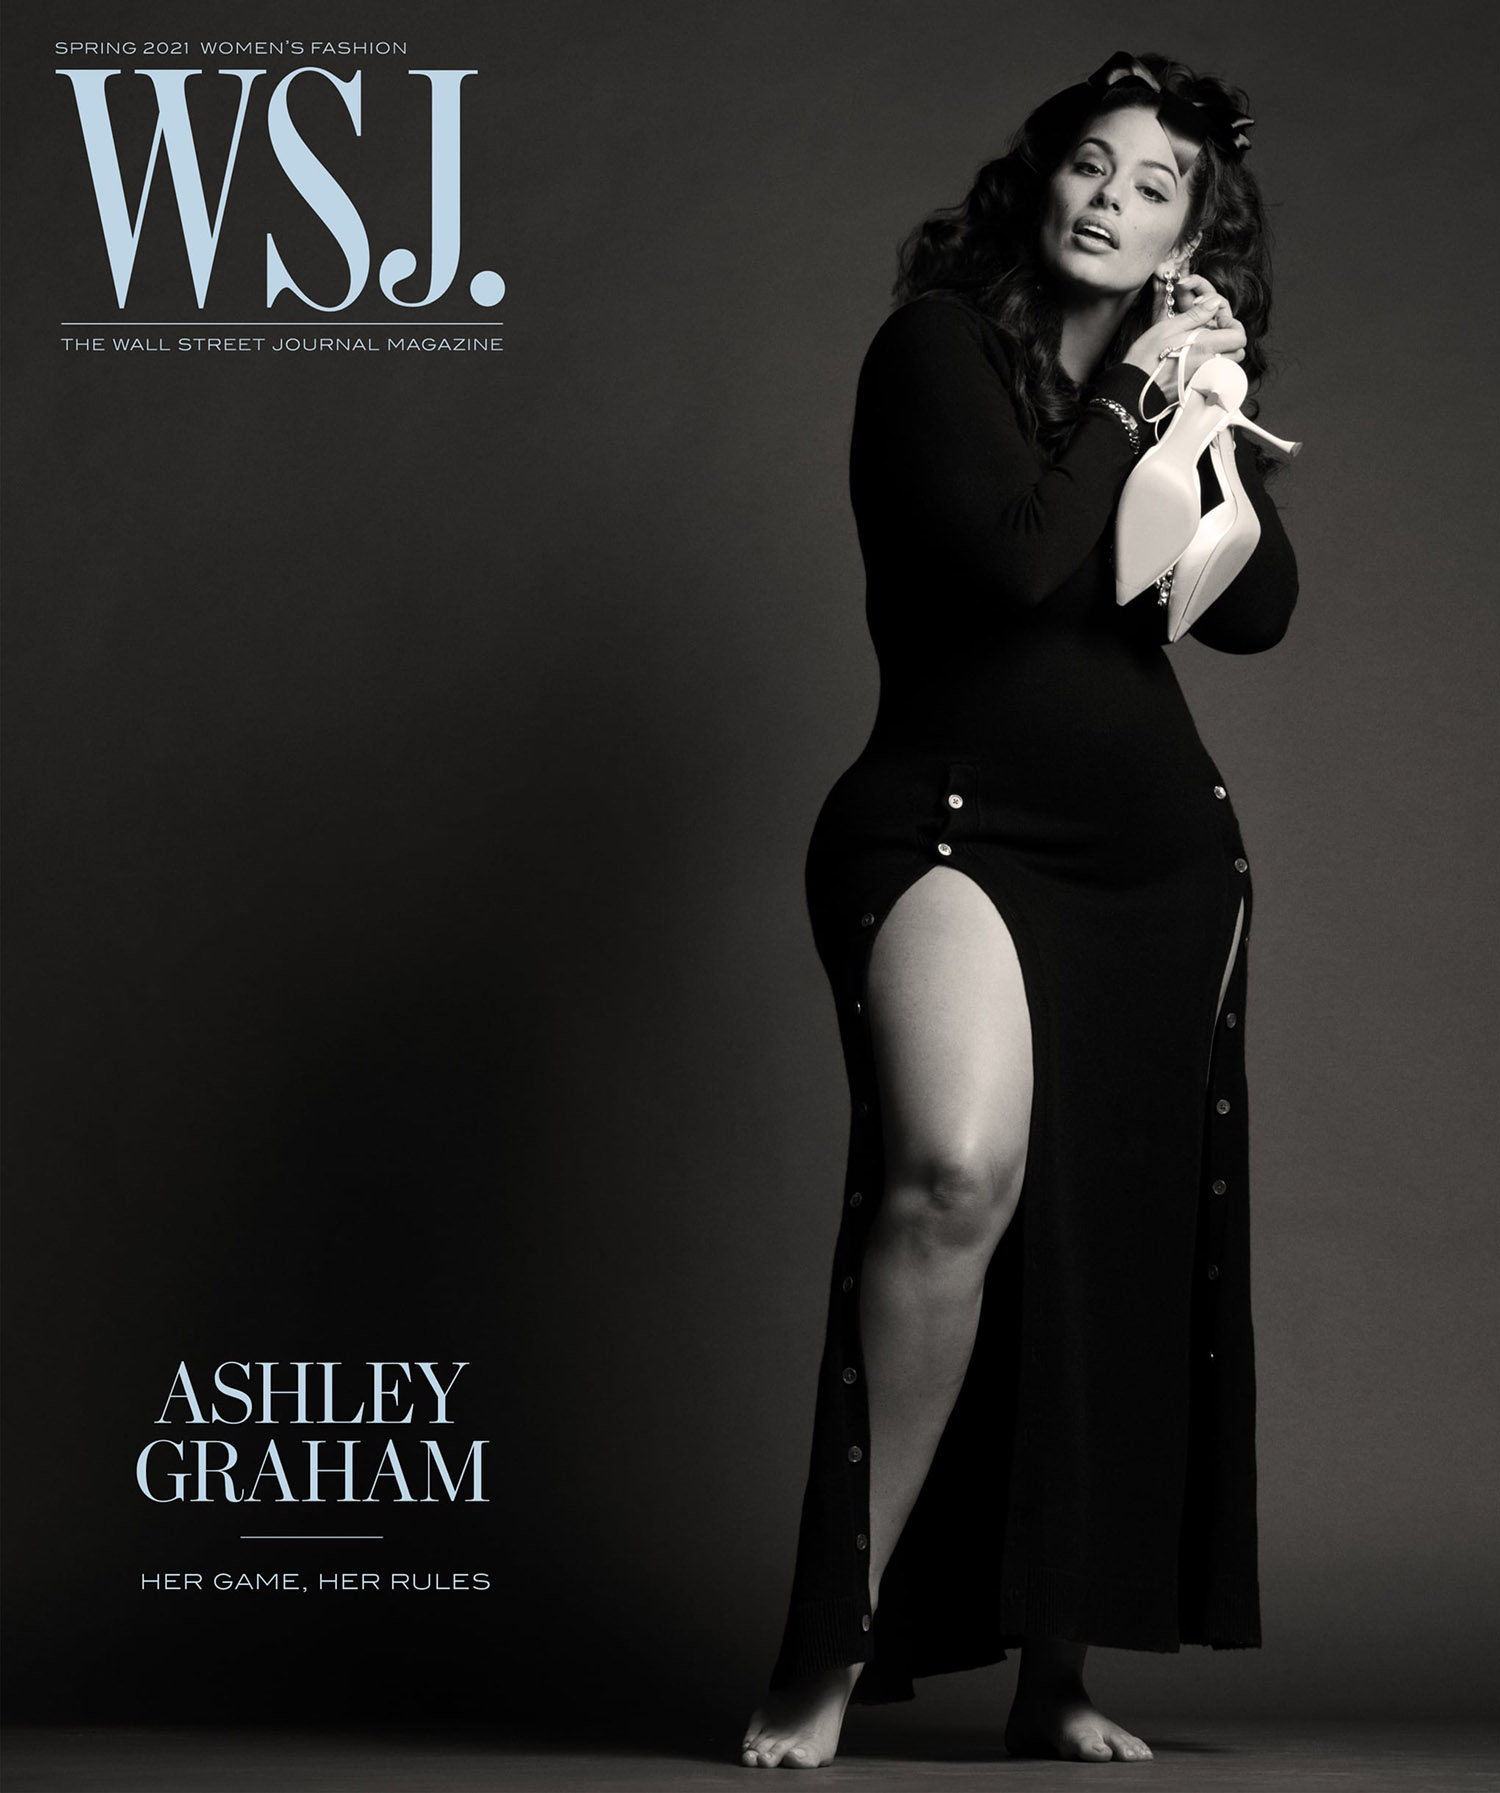 Ashley Graham covers WSJ. Magazine Spring 2021 by Ethan James Green